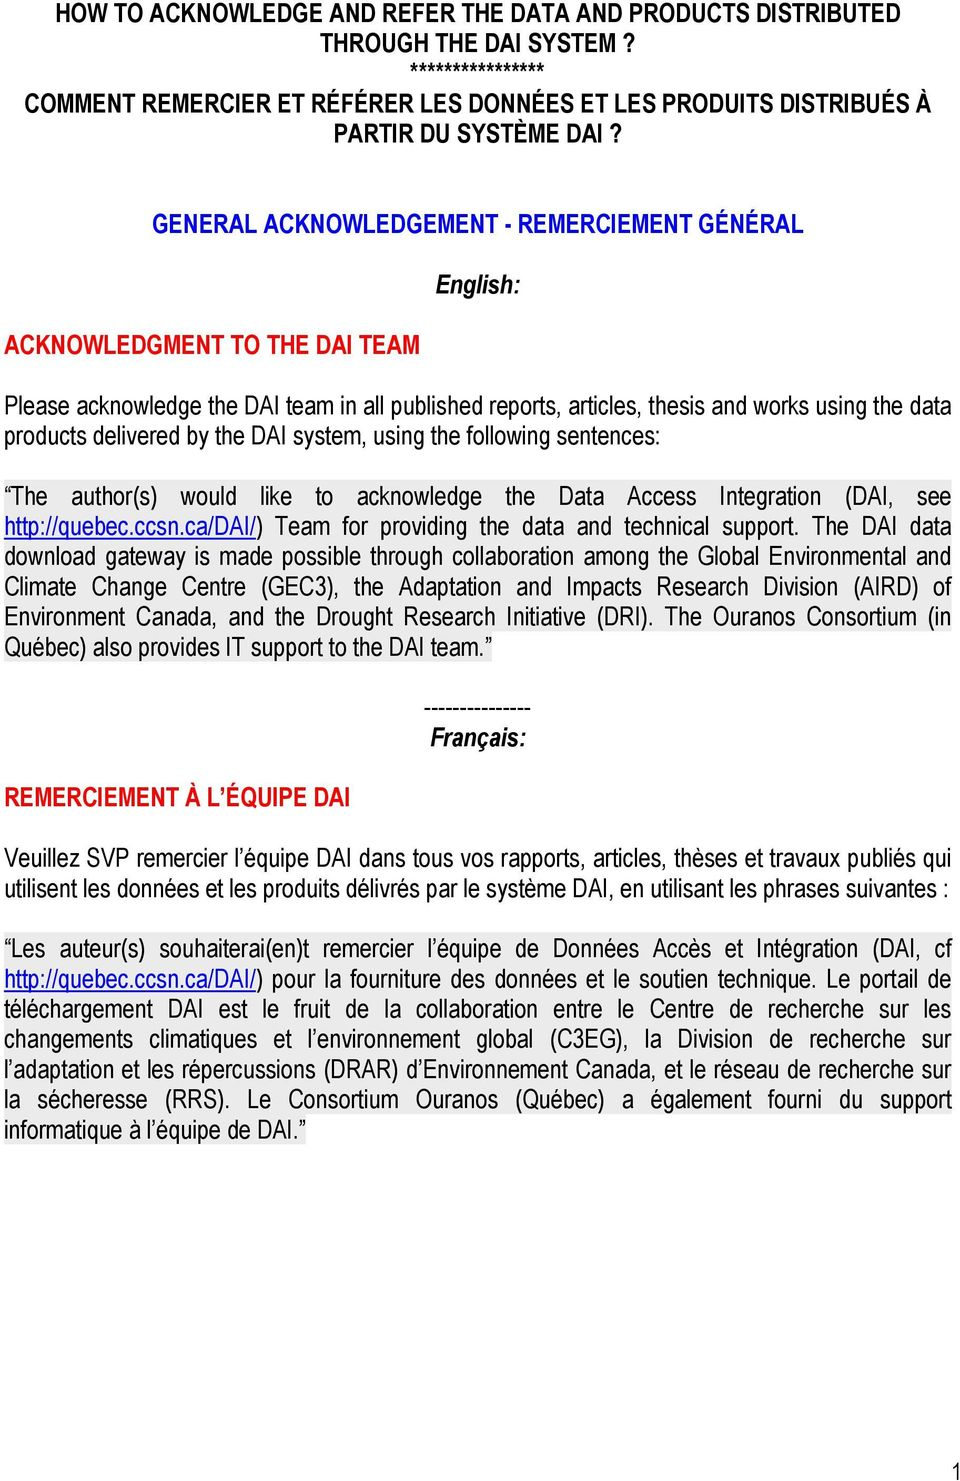 the DAI system, using the following sentences: The author(s) would like to acknowledge the Data Access Integration (DAI, see http://quebec.ccsn.